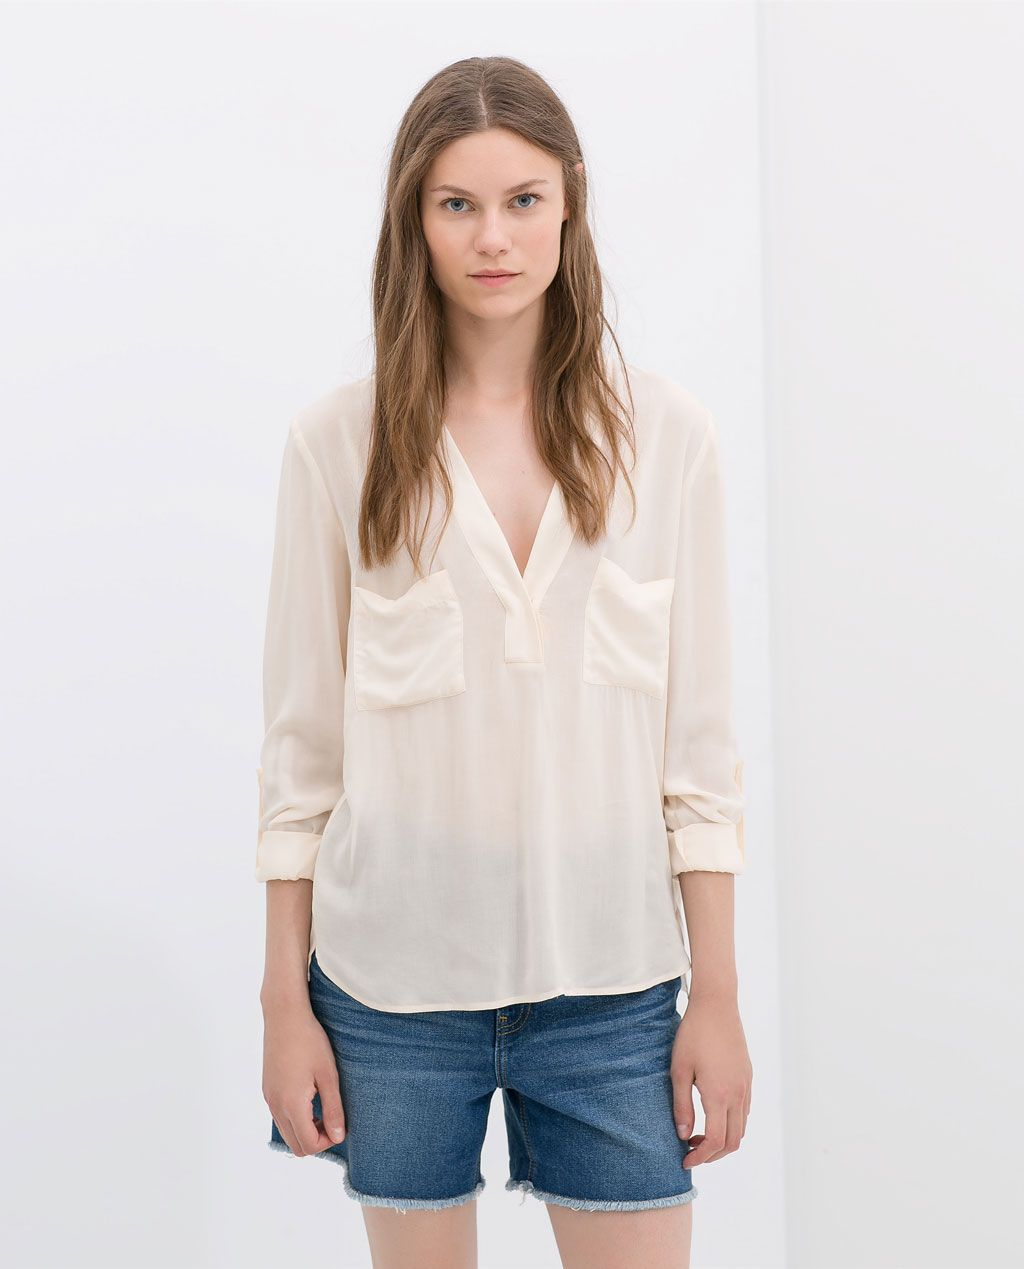 999d01f1c0 Image 1 of EMBELLISHED BLOUSE WITH V BACK from Zara | fashion ...